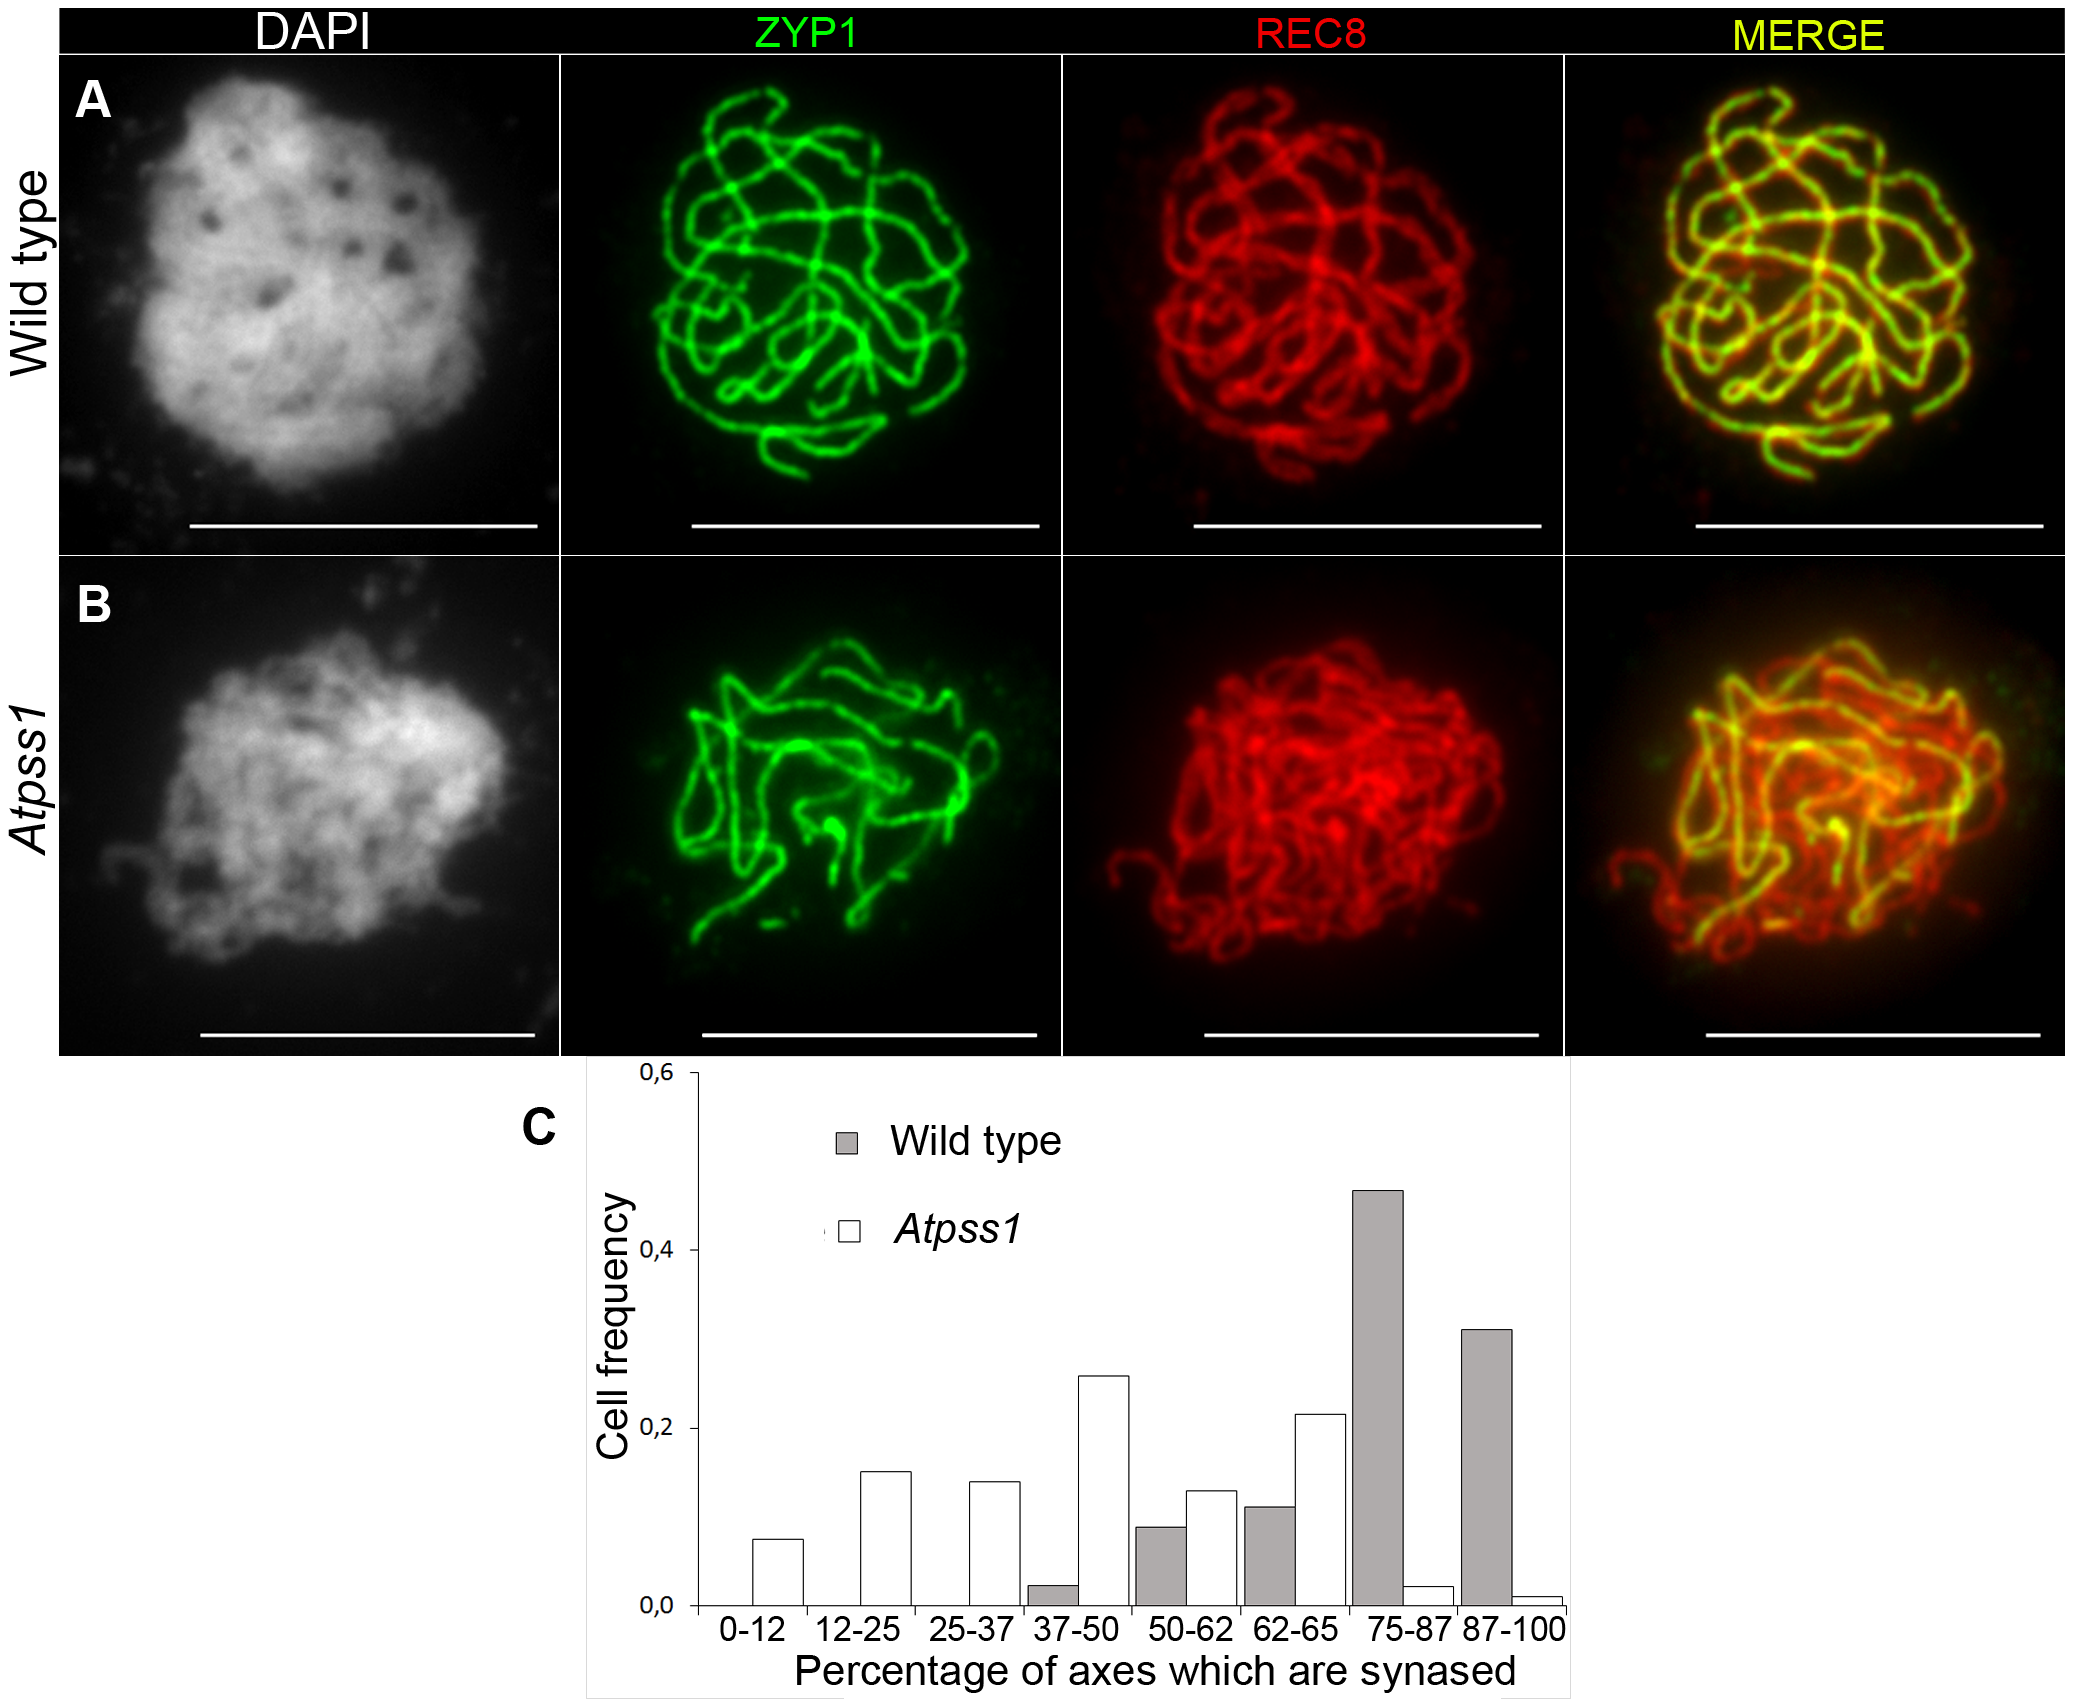 Co-immunolocalization of REC8 and ZYP1 at pachytene.